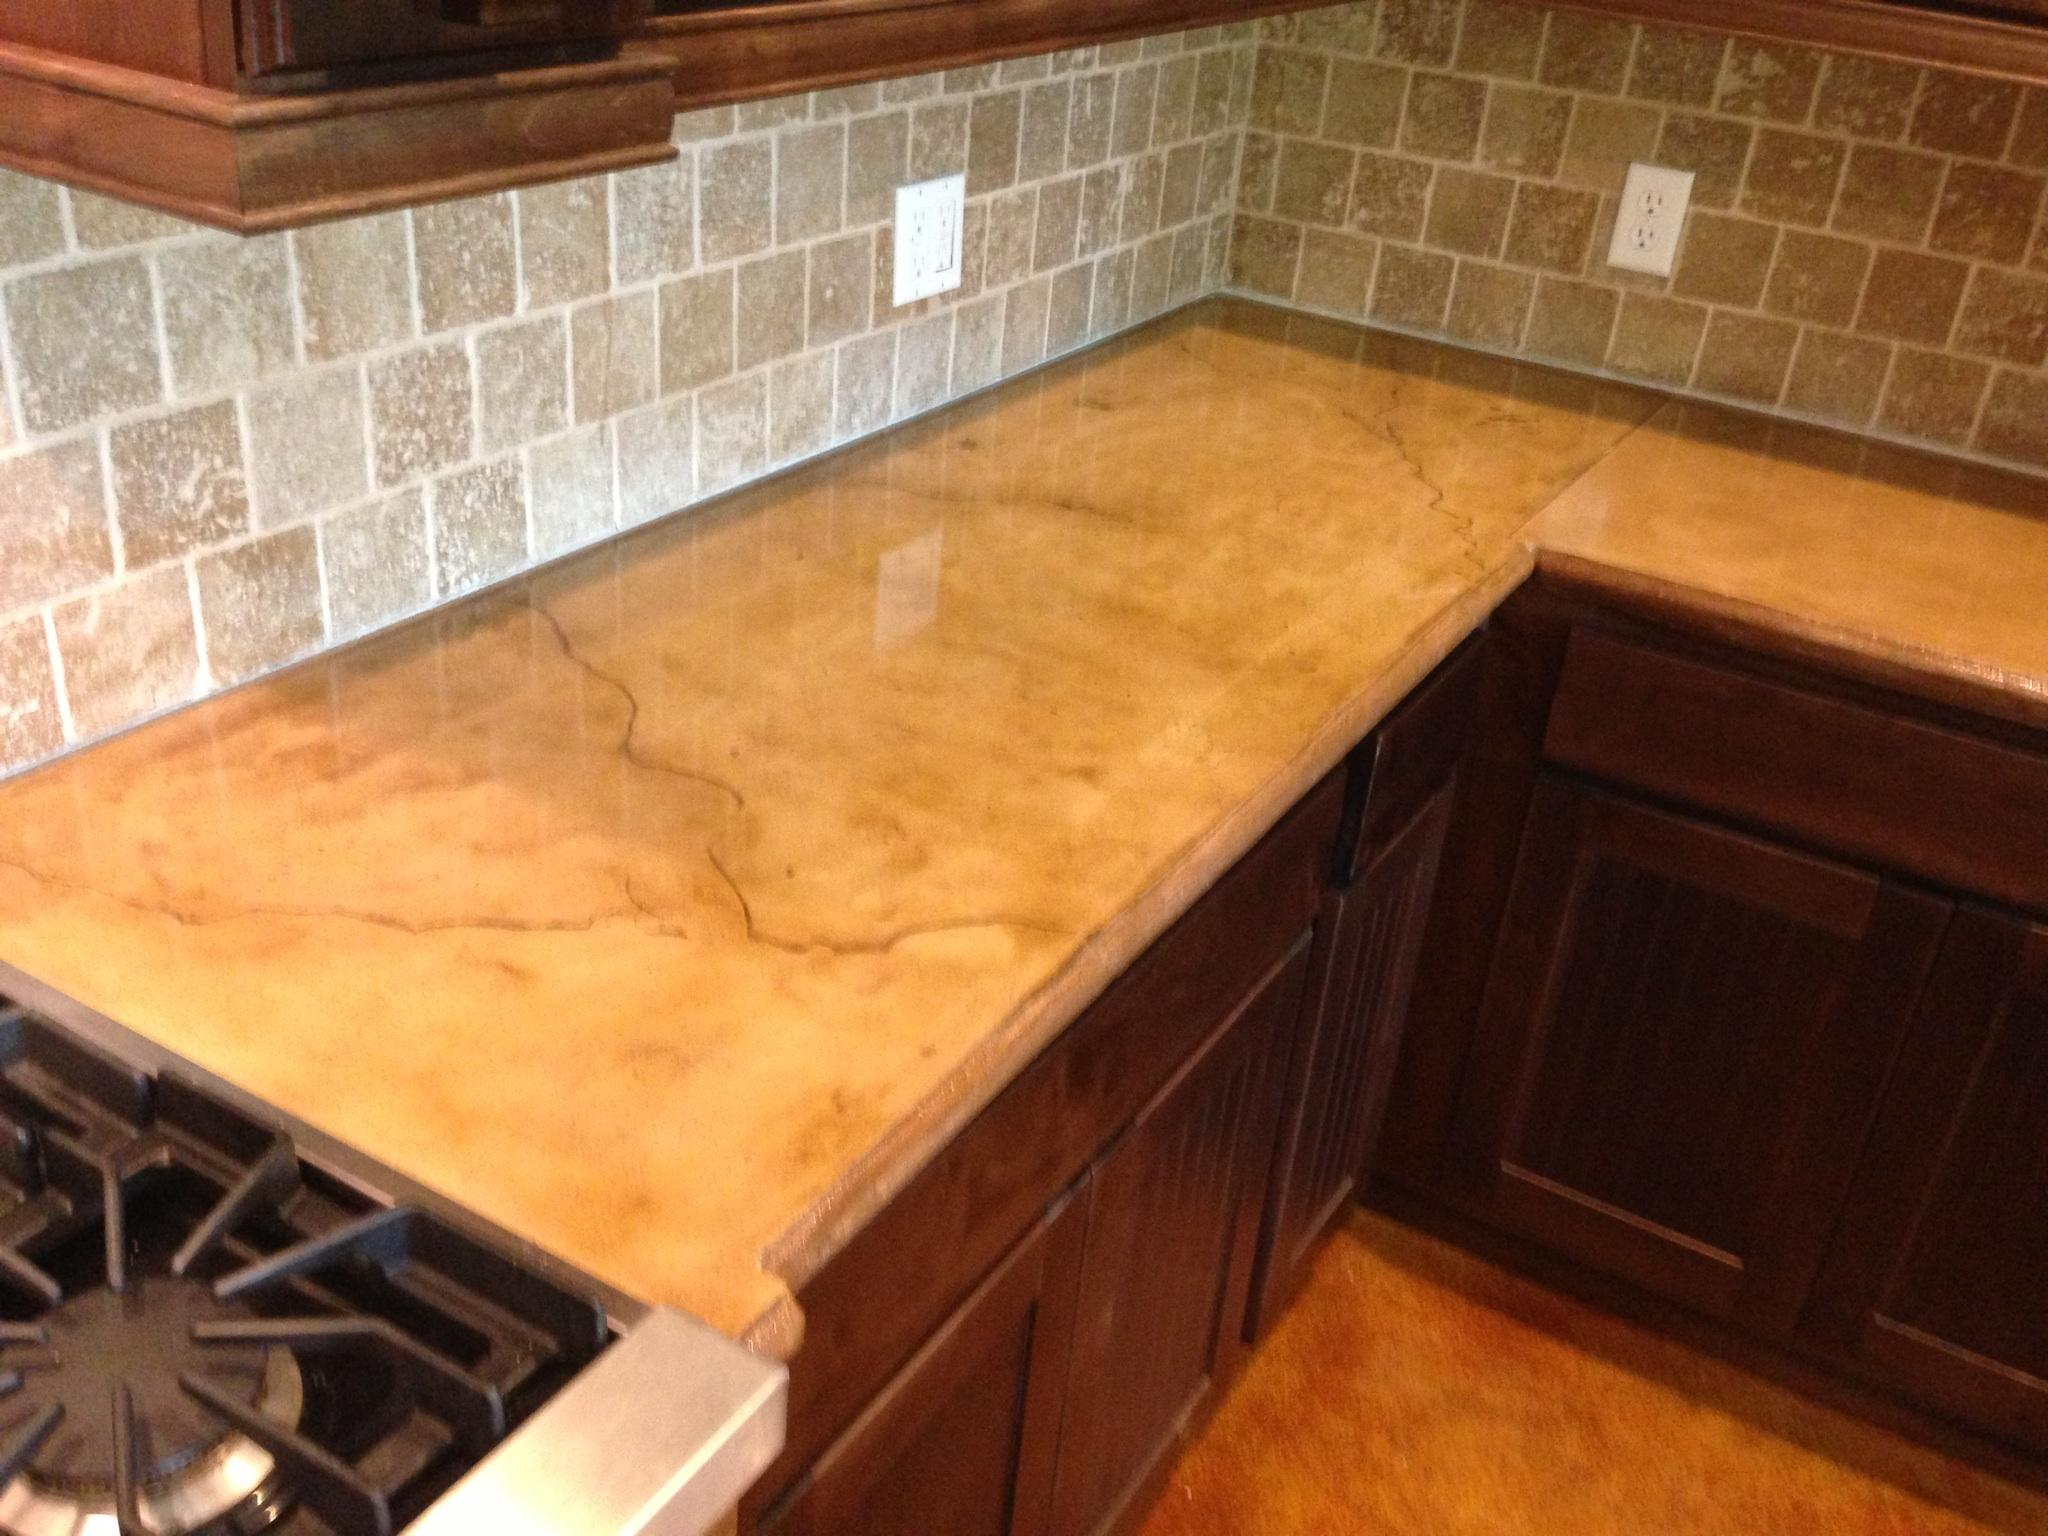 How Much Is Concrete Countertops Concrete Installer Discovers Concrete Countertops